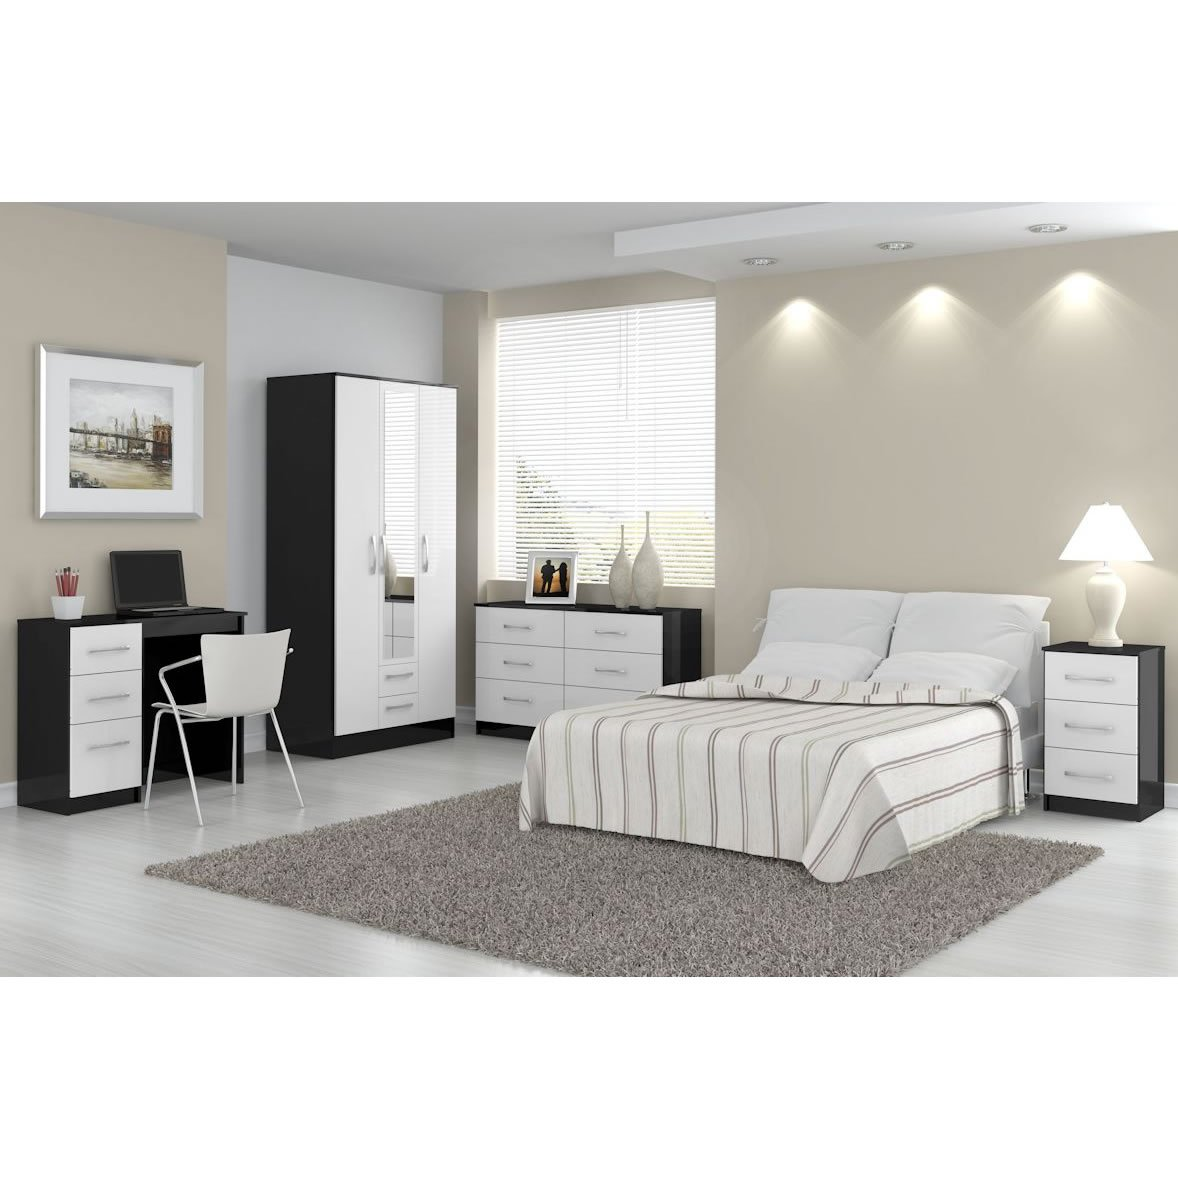 Lynx Bedroom Furniture 5 Drawer Chest Lynx Black White High Gloss Contemporary